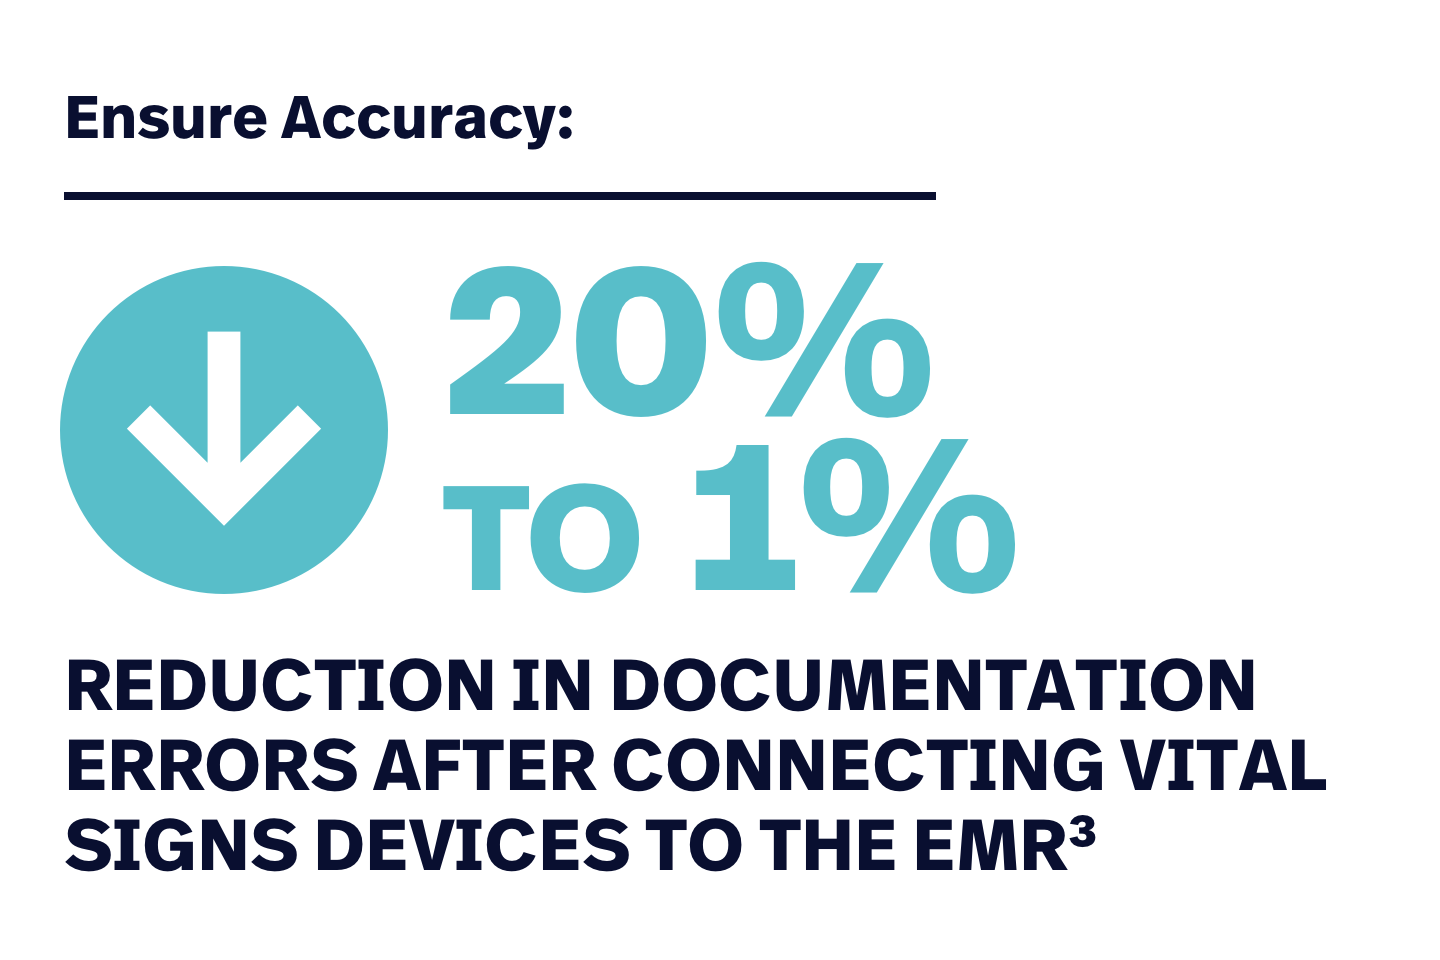 Ensure accuracy: 20% to 1% reduction in documentation errors after connecting vital signs devices to the EMR